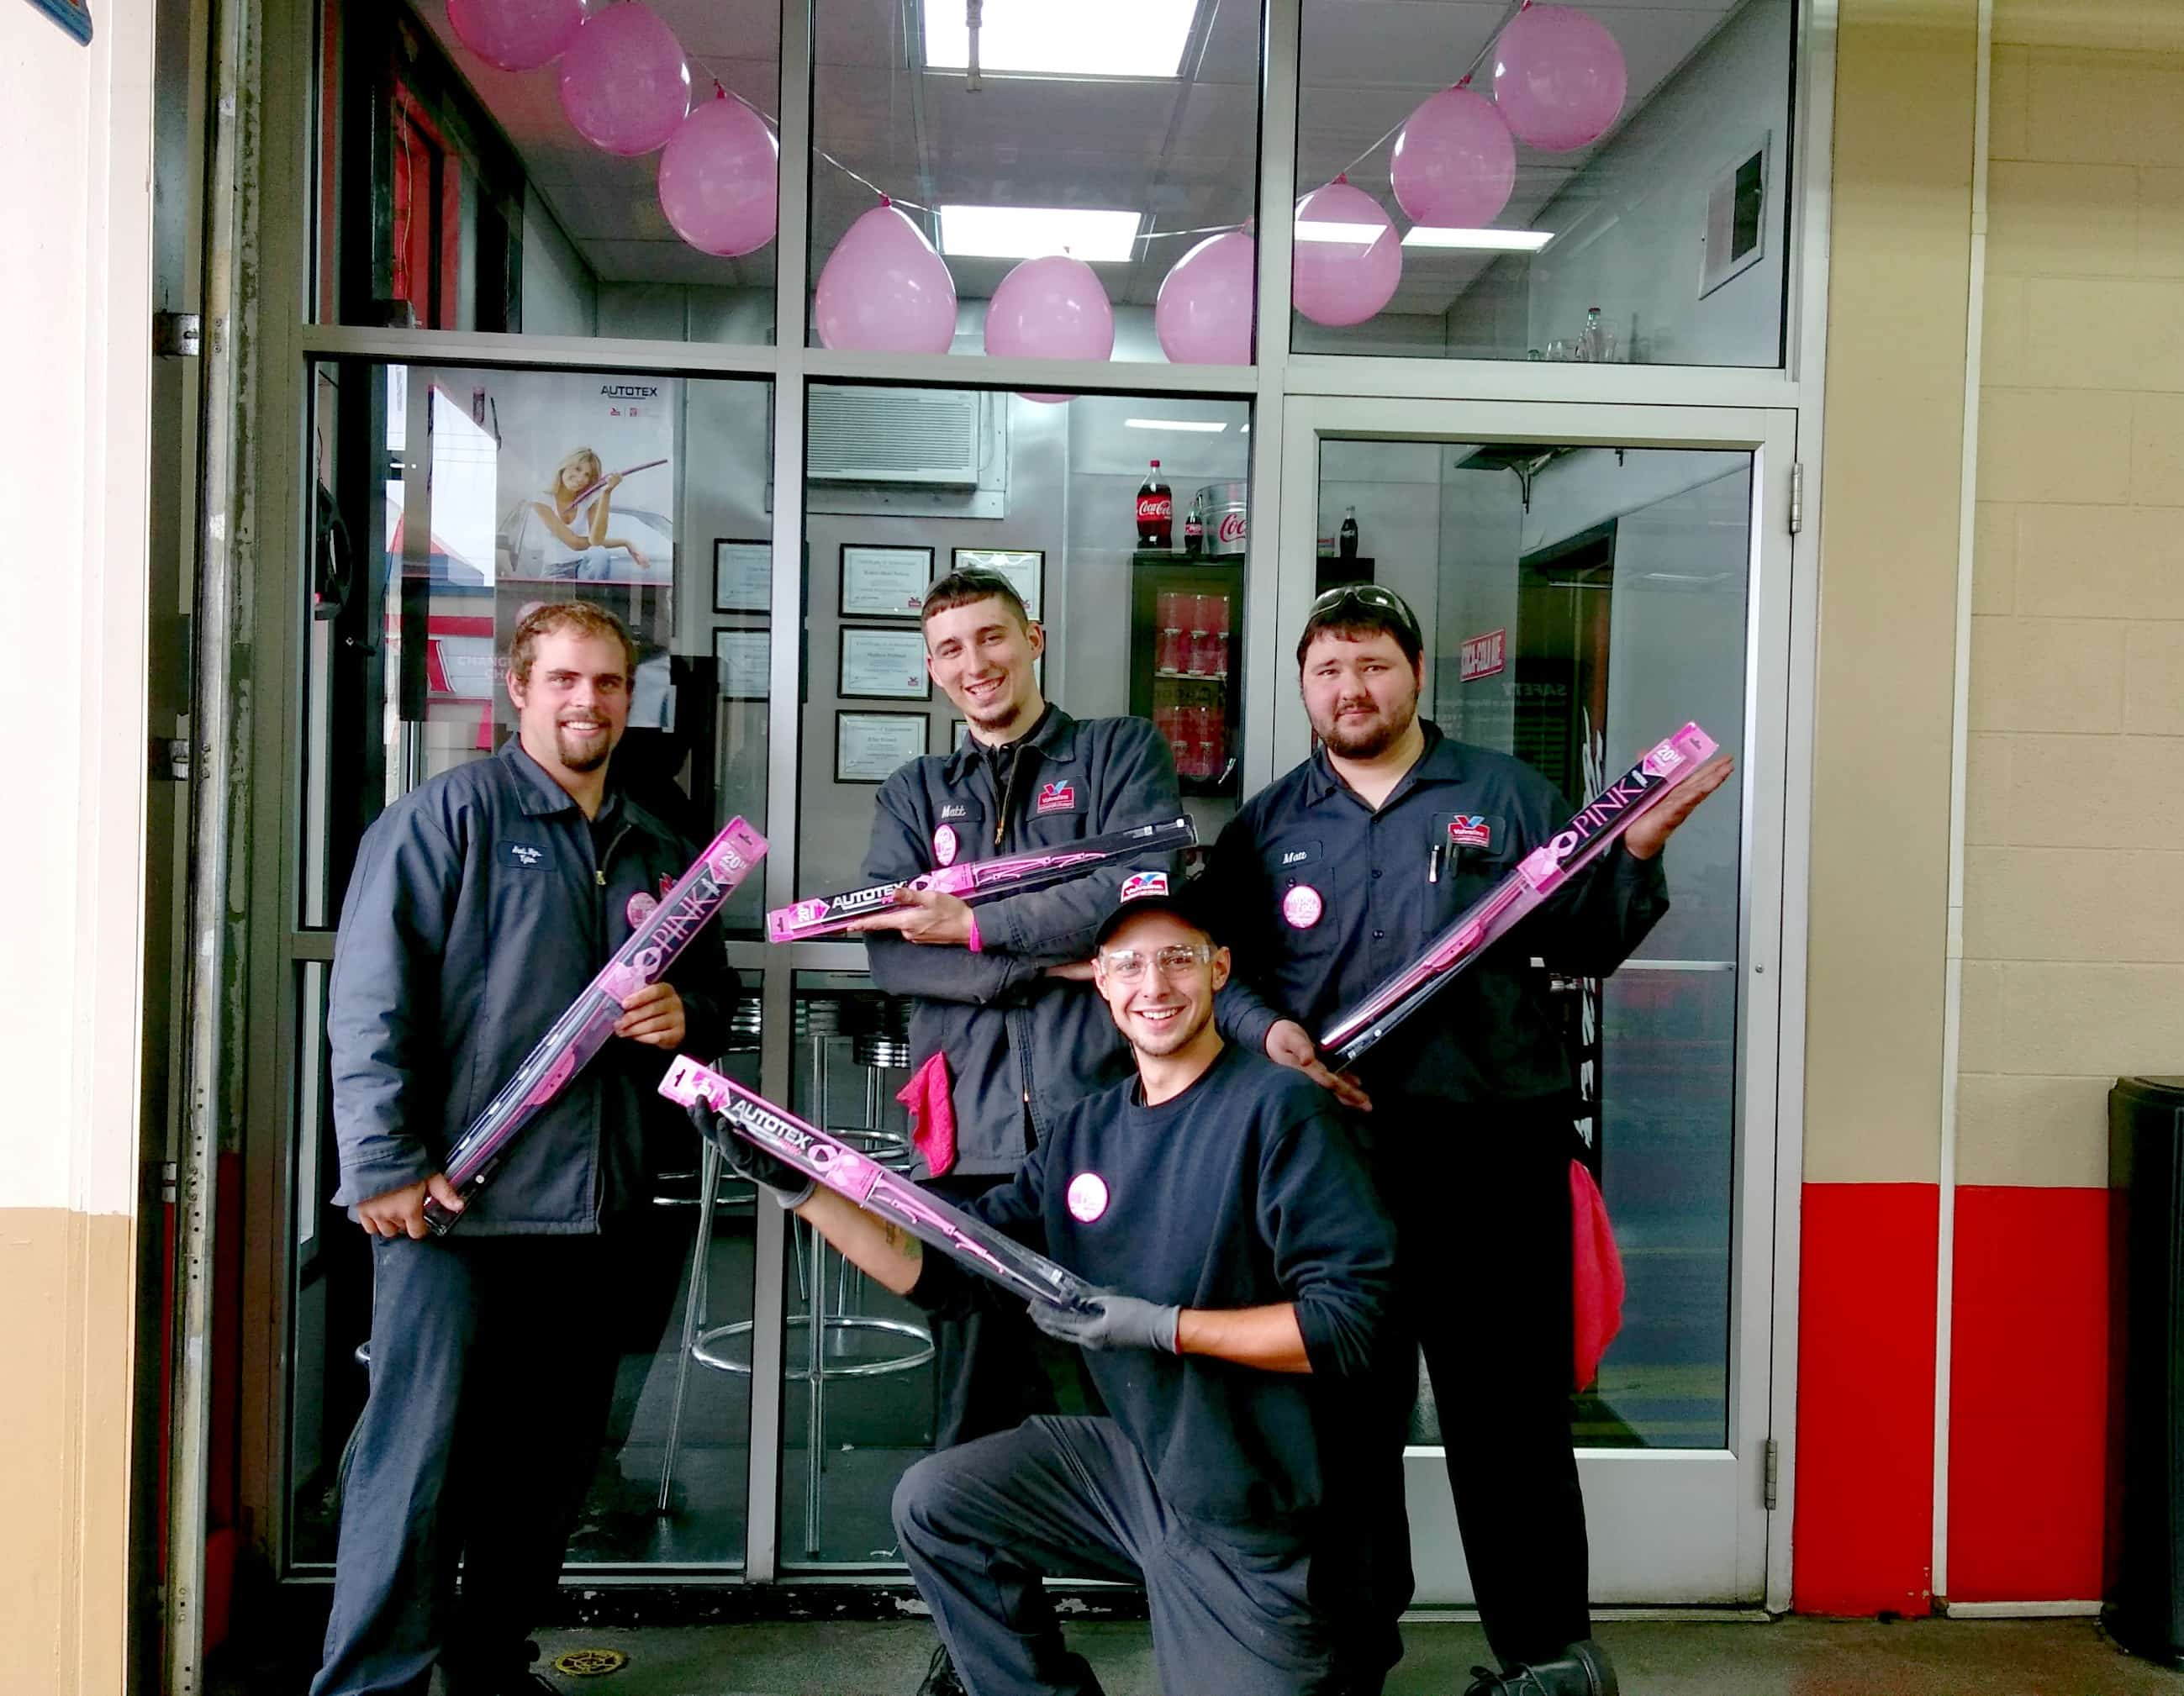 pink wiper blades for breast cancer